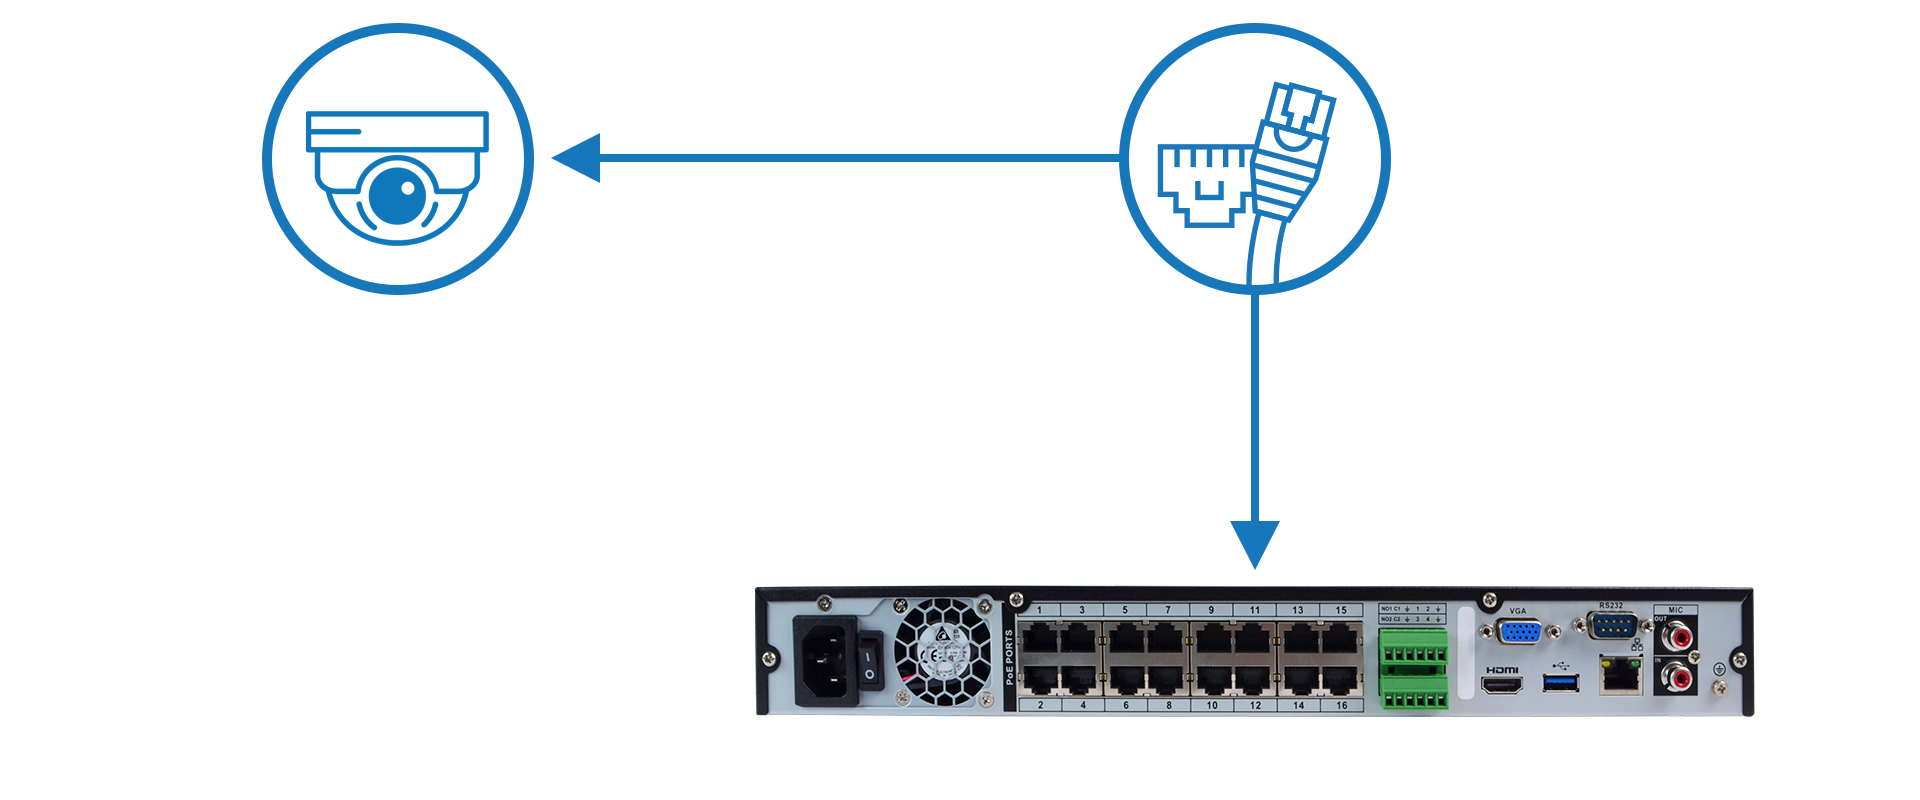 Easy POE Installation for Optiview IP Cameras